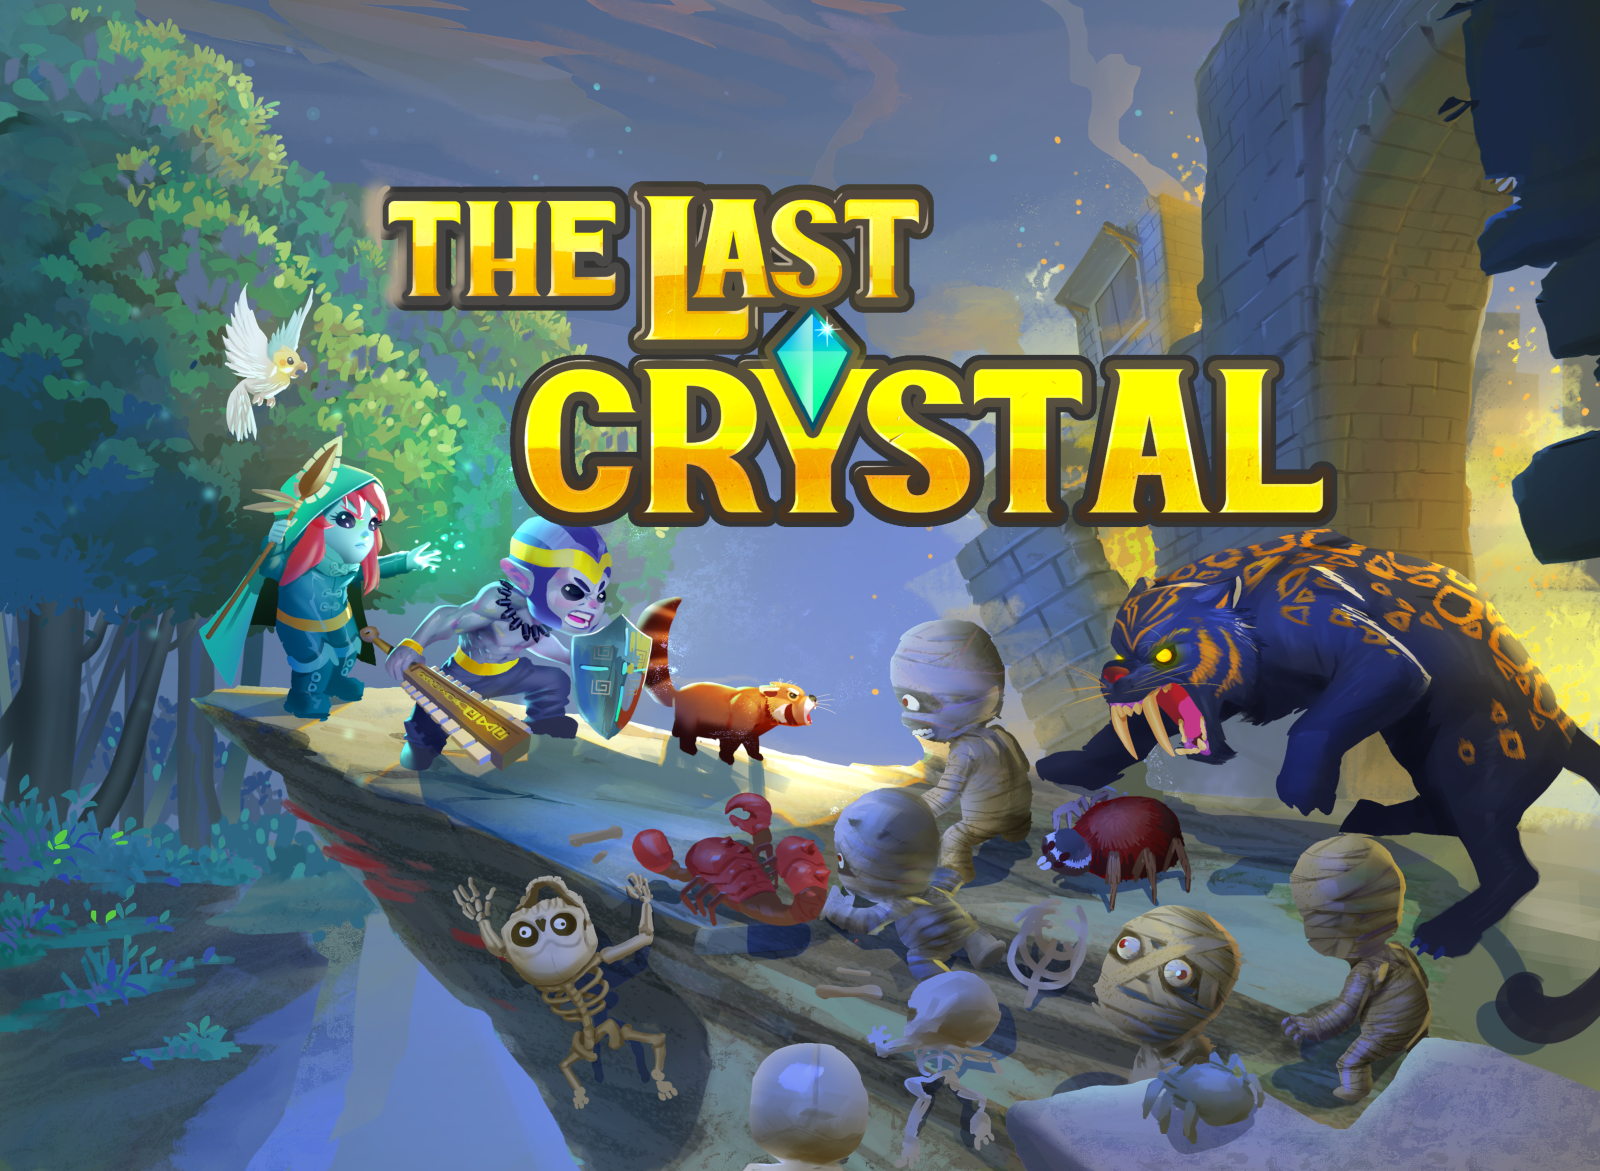 The Last Crystal—Co-op Adventure Game—Kickstarter and demo release!